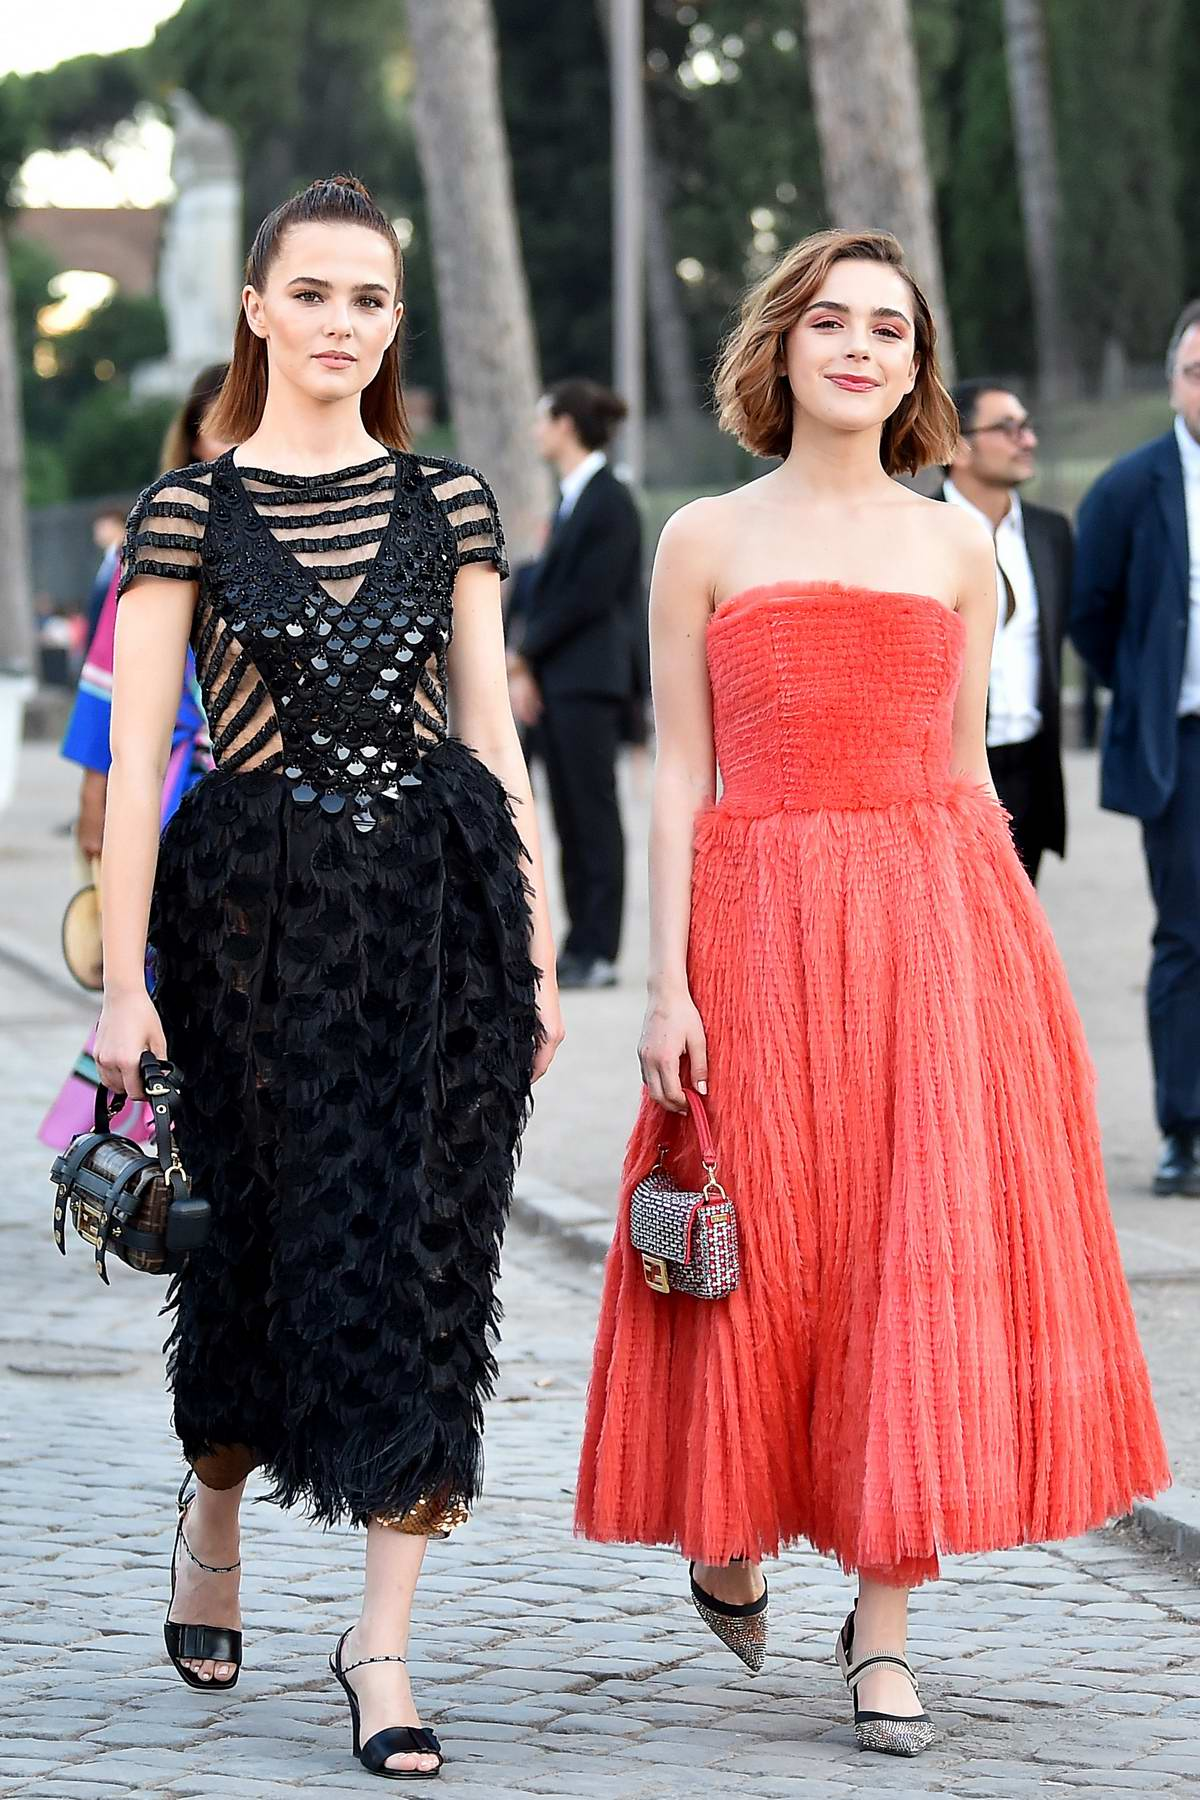 Kiernan Shipka and Zoey Deutch attend the Cocktail and Fendi Couture Fall/Winter 2019/20 at Palatine Hill in Rome, Italy